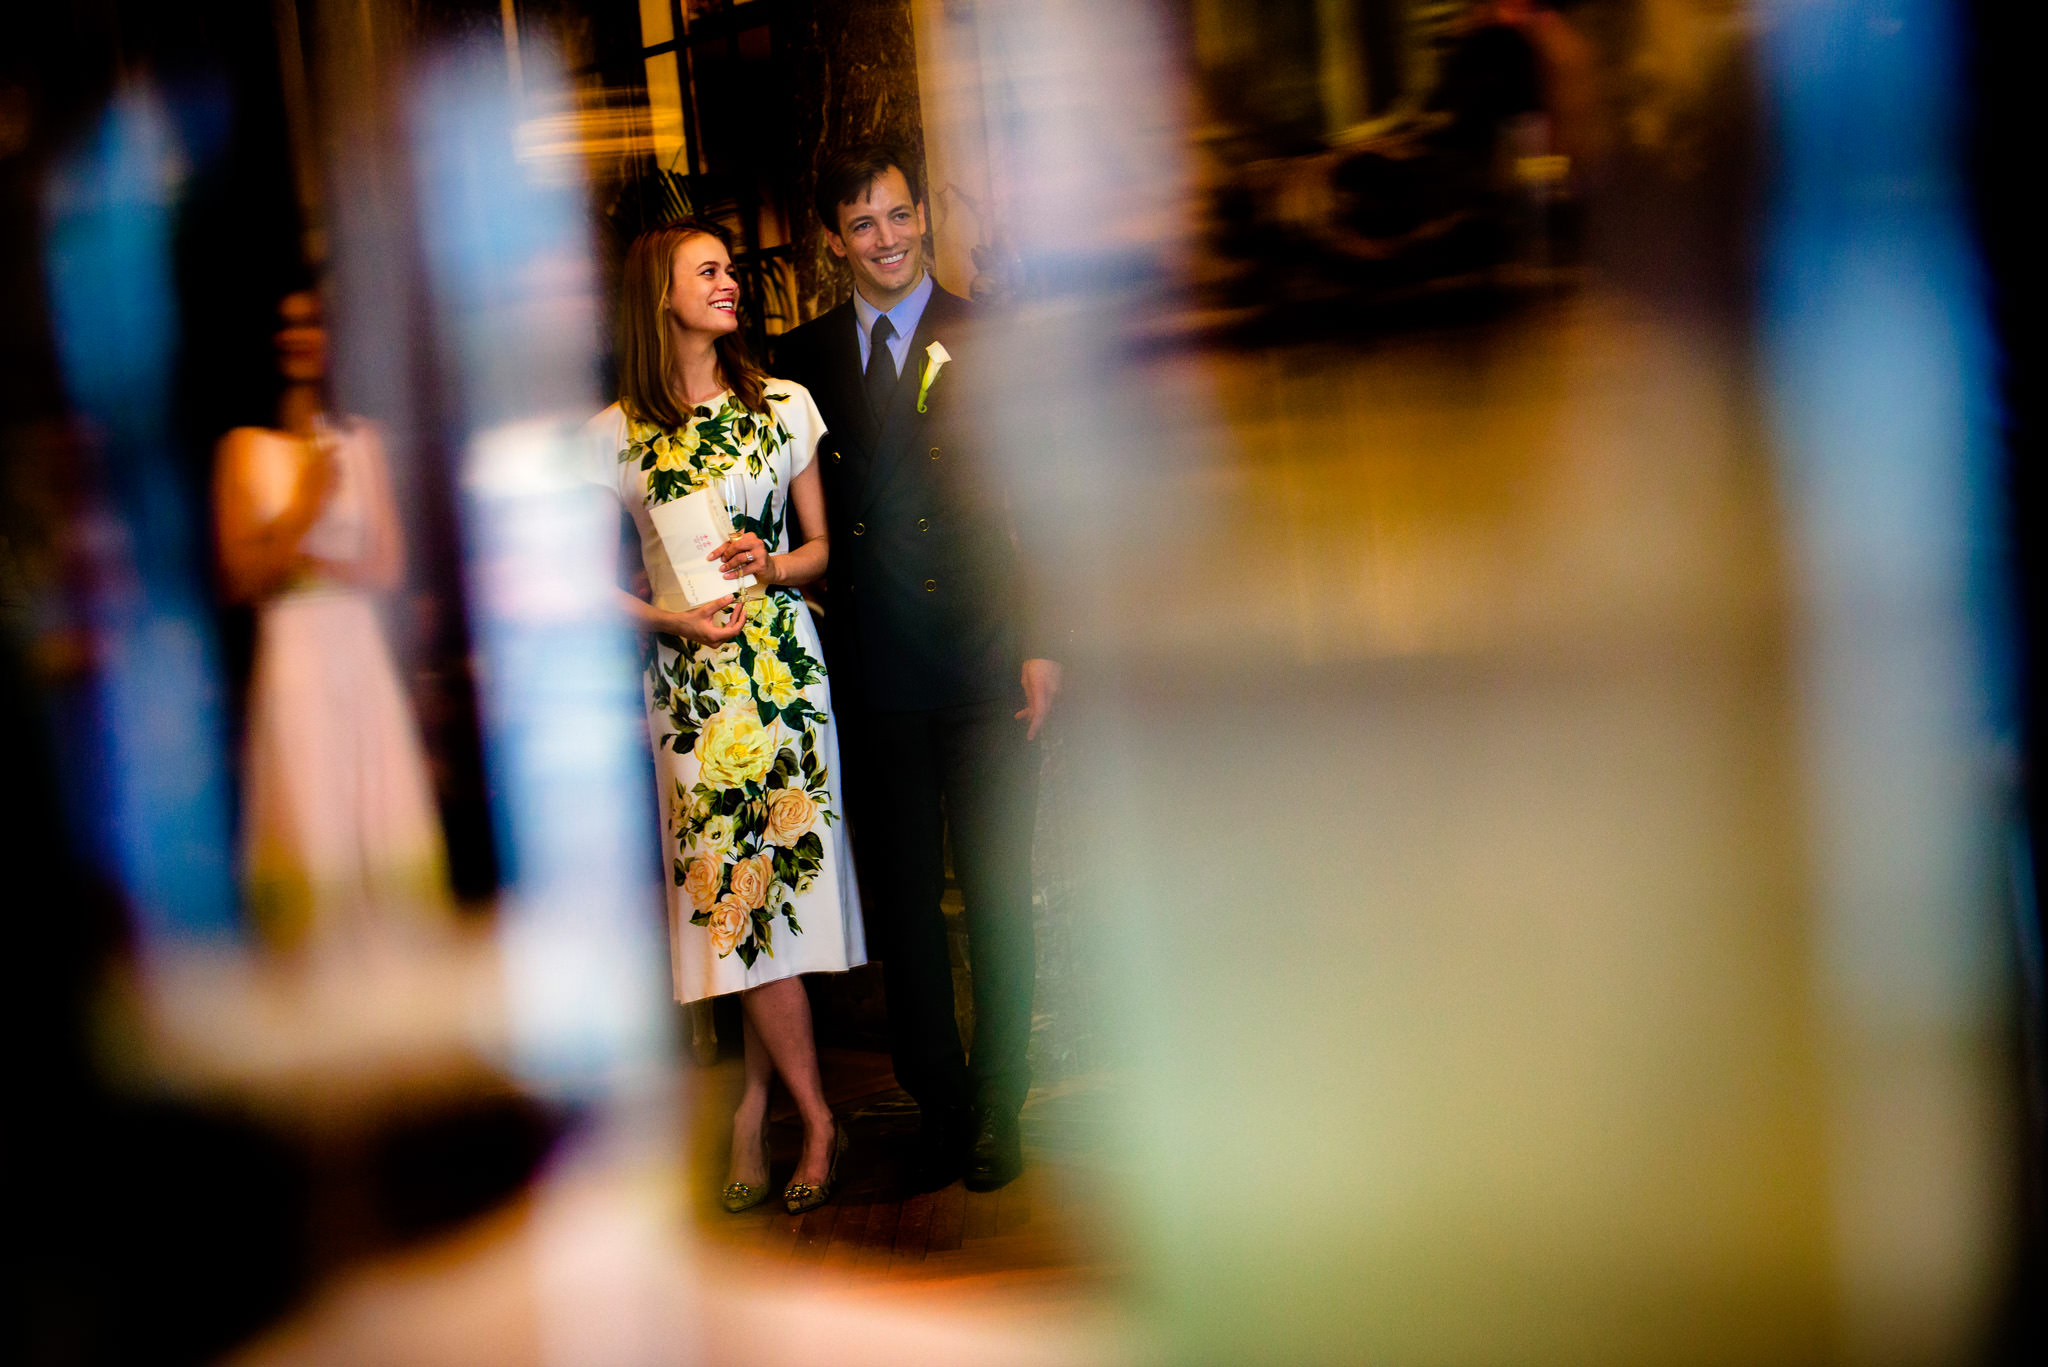 Portrait of bride and groom at wedding reception in New York